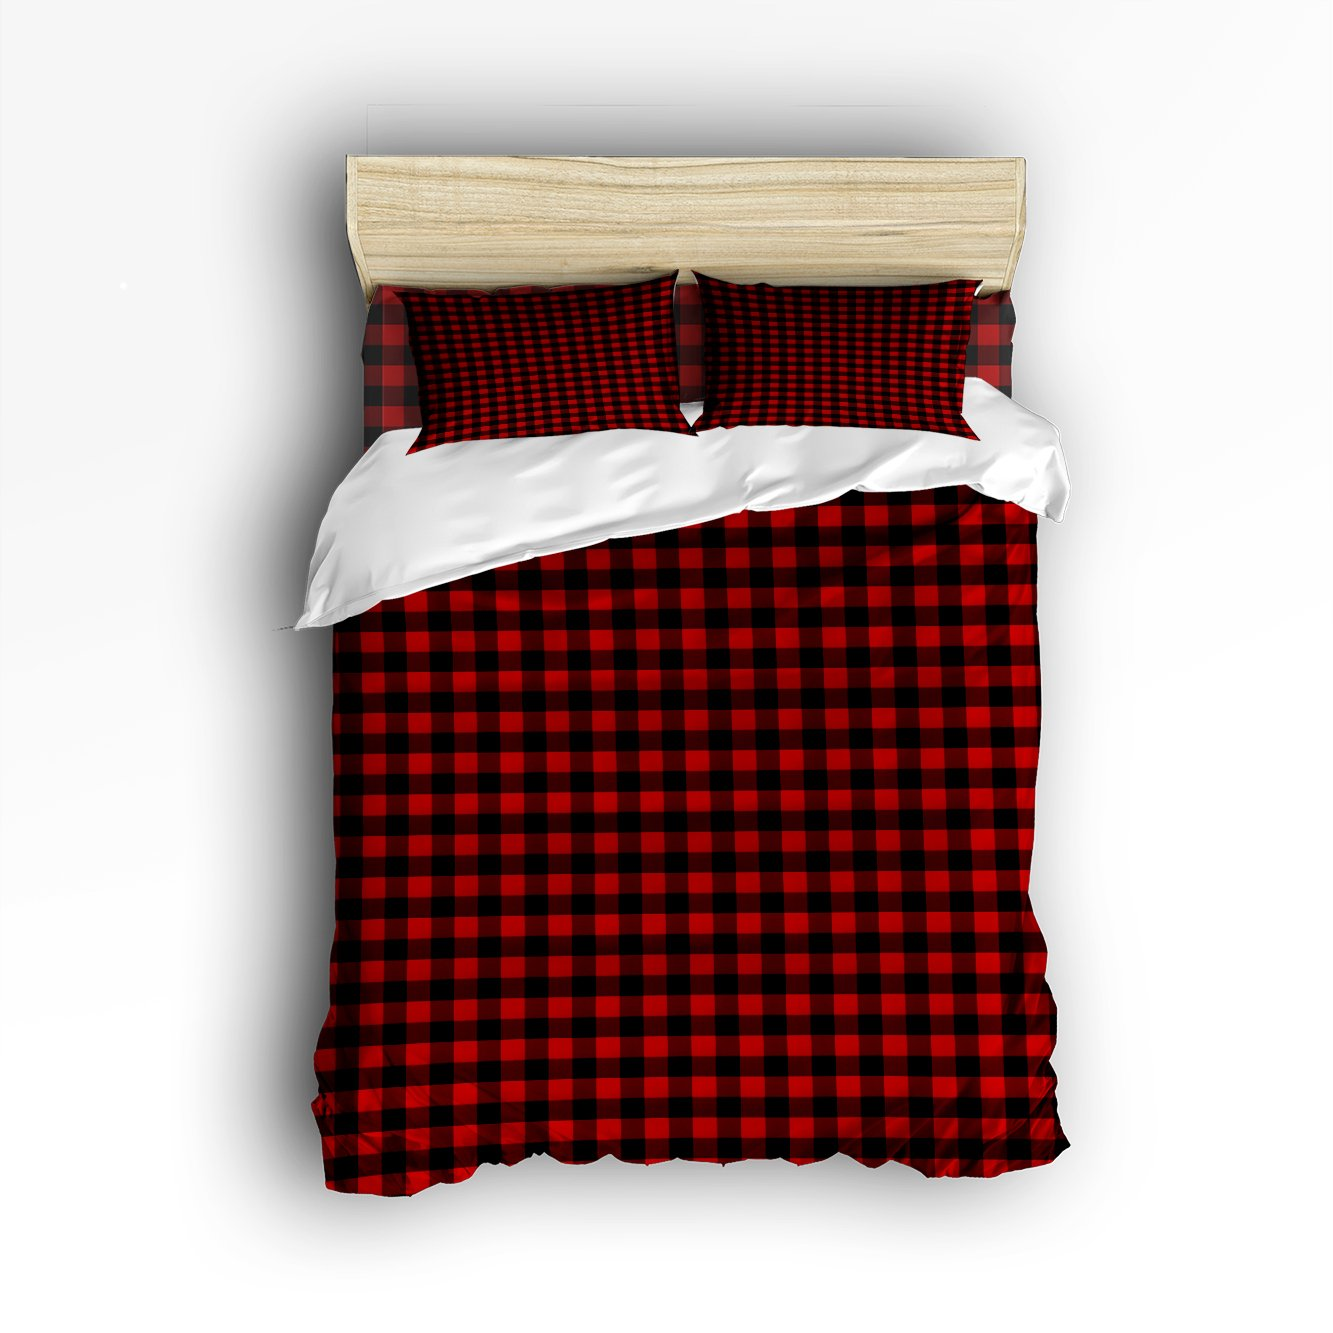 Libaoge 4 Piece Bed Sheets Set, Red Black Buffalo Check Plaid Pattern, 1 Flat Sheet 1 Duvet Cover and 2 Pillow Cases